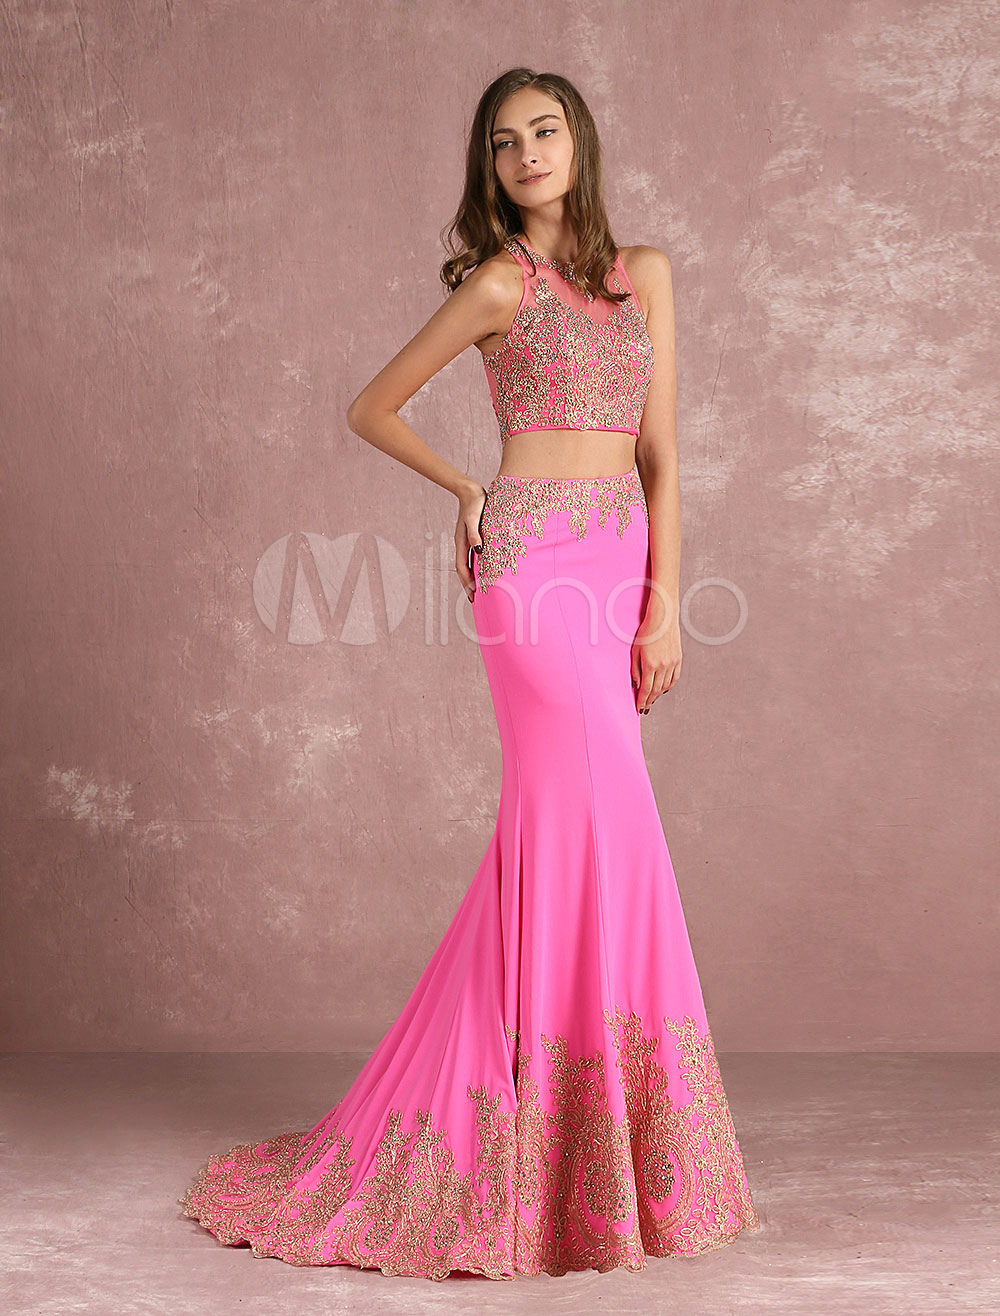 Buy Two Piece Prom Dress 2018 Long Pink Crop Top Mermaid Evening Dress Illusion Lace Applique Beading Party Dress With Train for $152.99 in Milanoo store